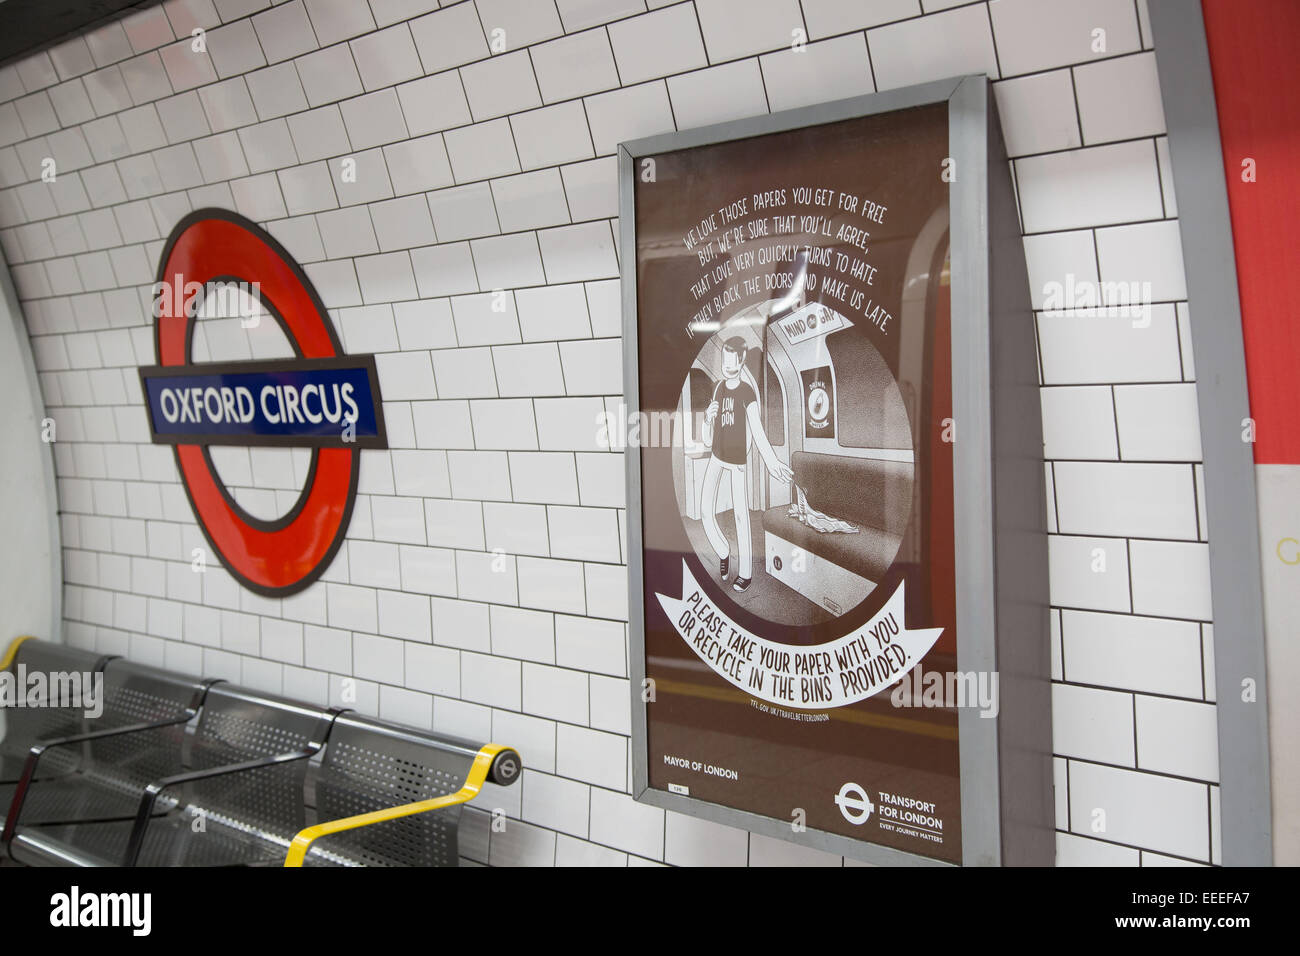 Better Behaviours campaign posters at Oxford Circus - Stock Image